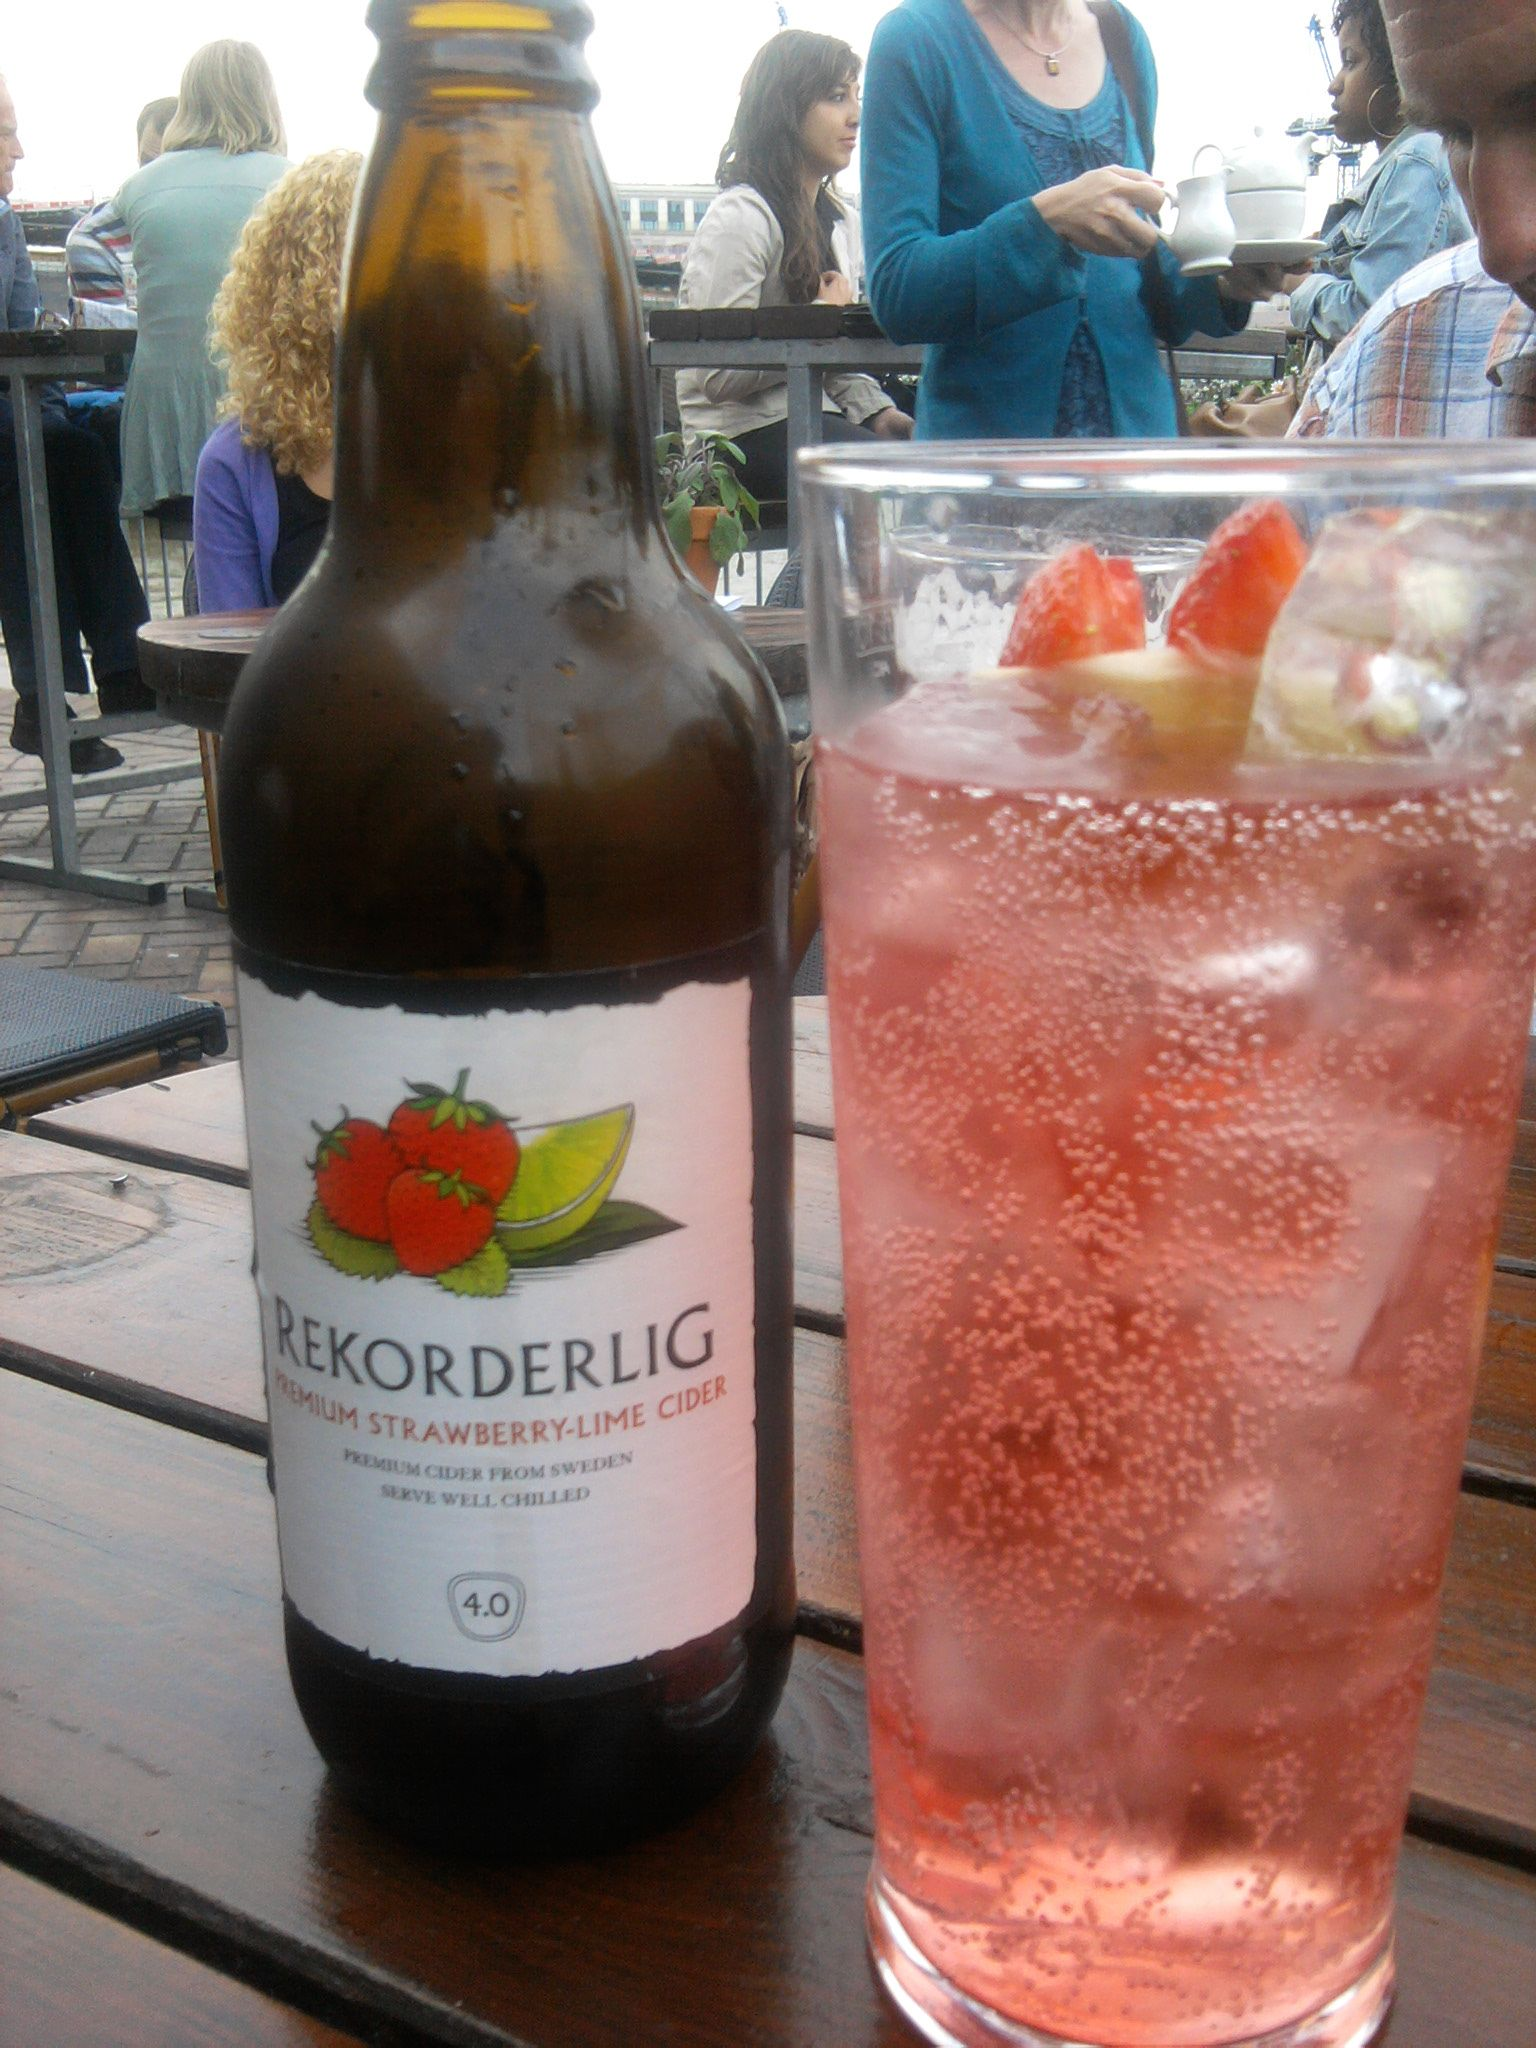 One of my favourite ciders - Rekorderlig strawberry and lime.